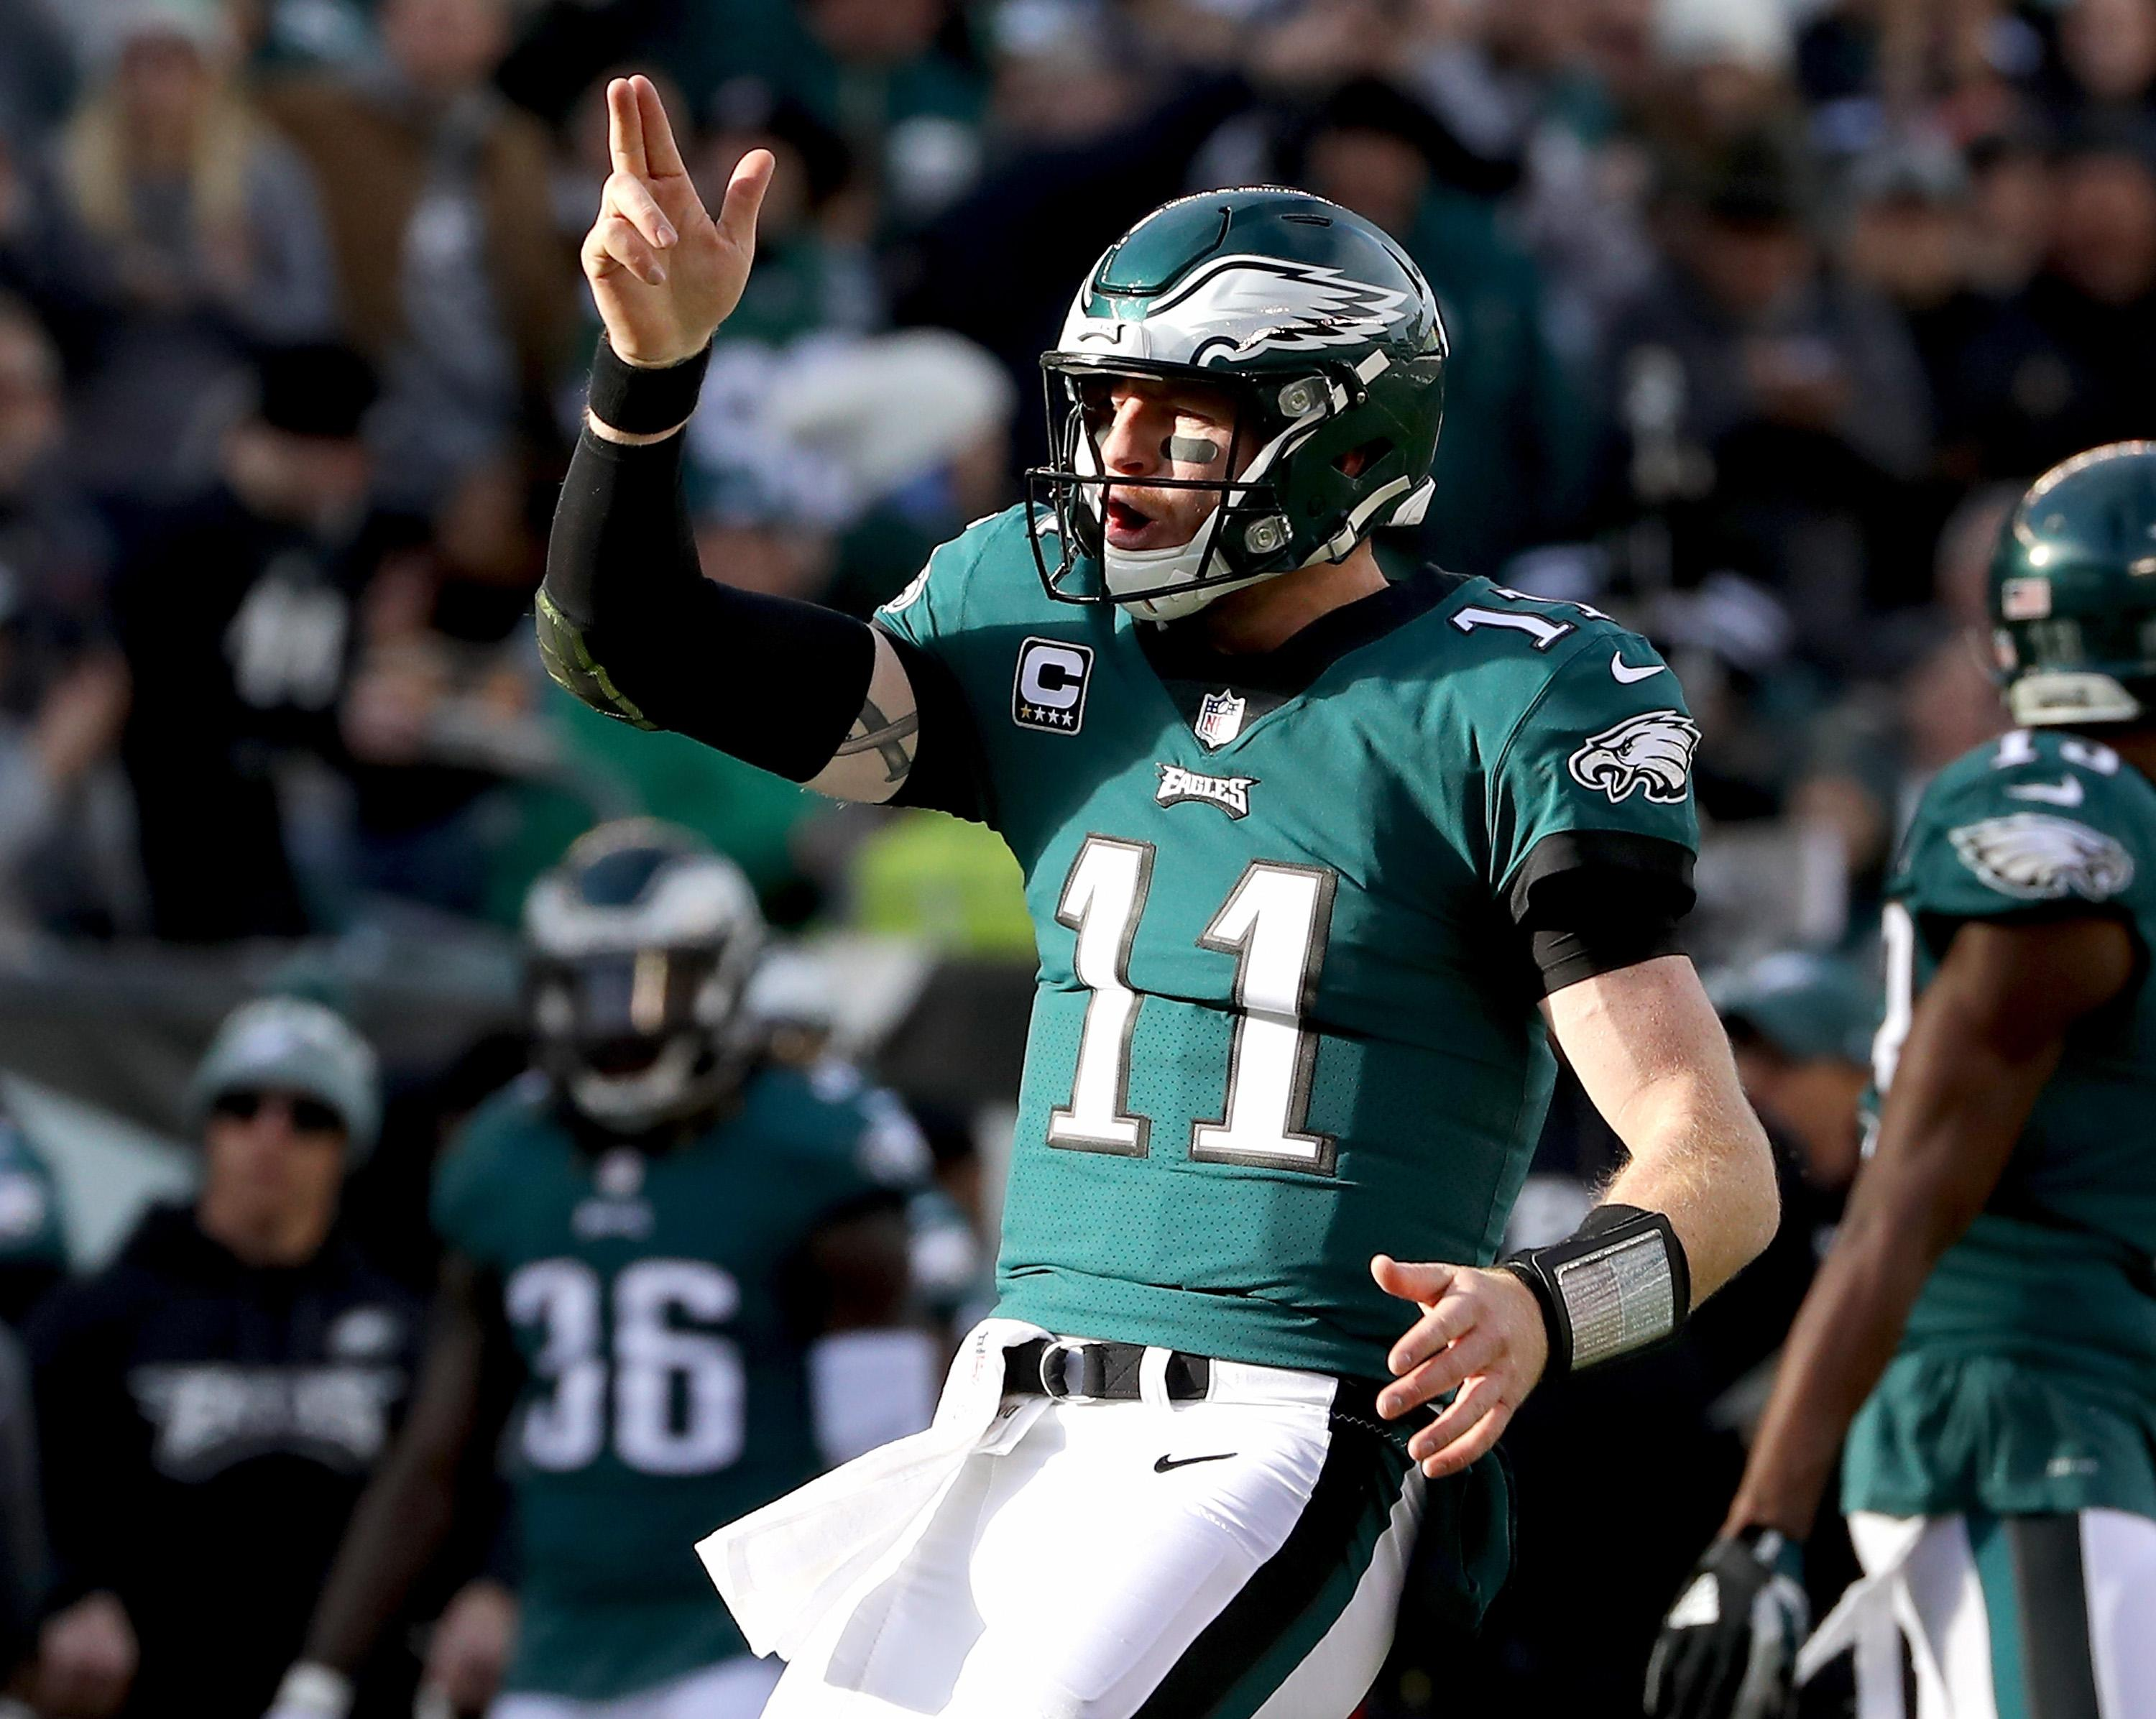 Standouts and strikeouts from Eagles 24-10 loss to Seahawks